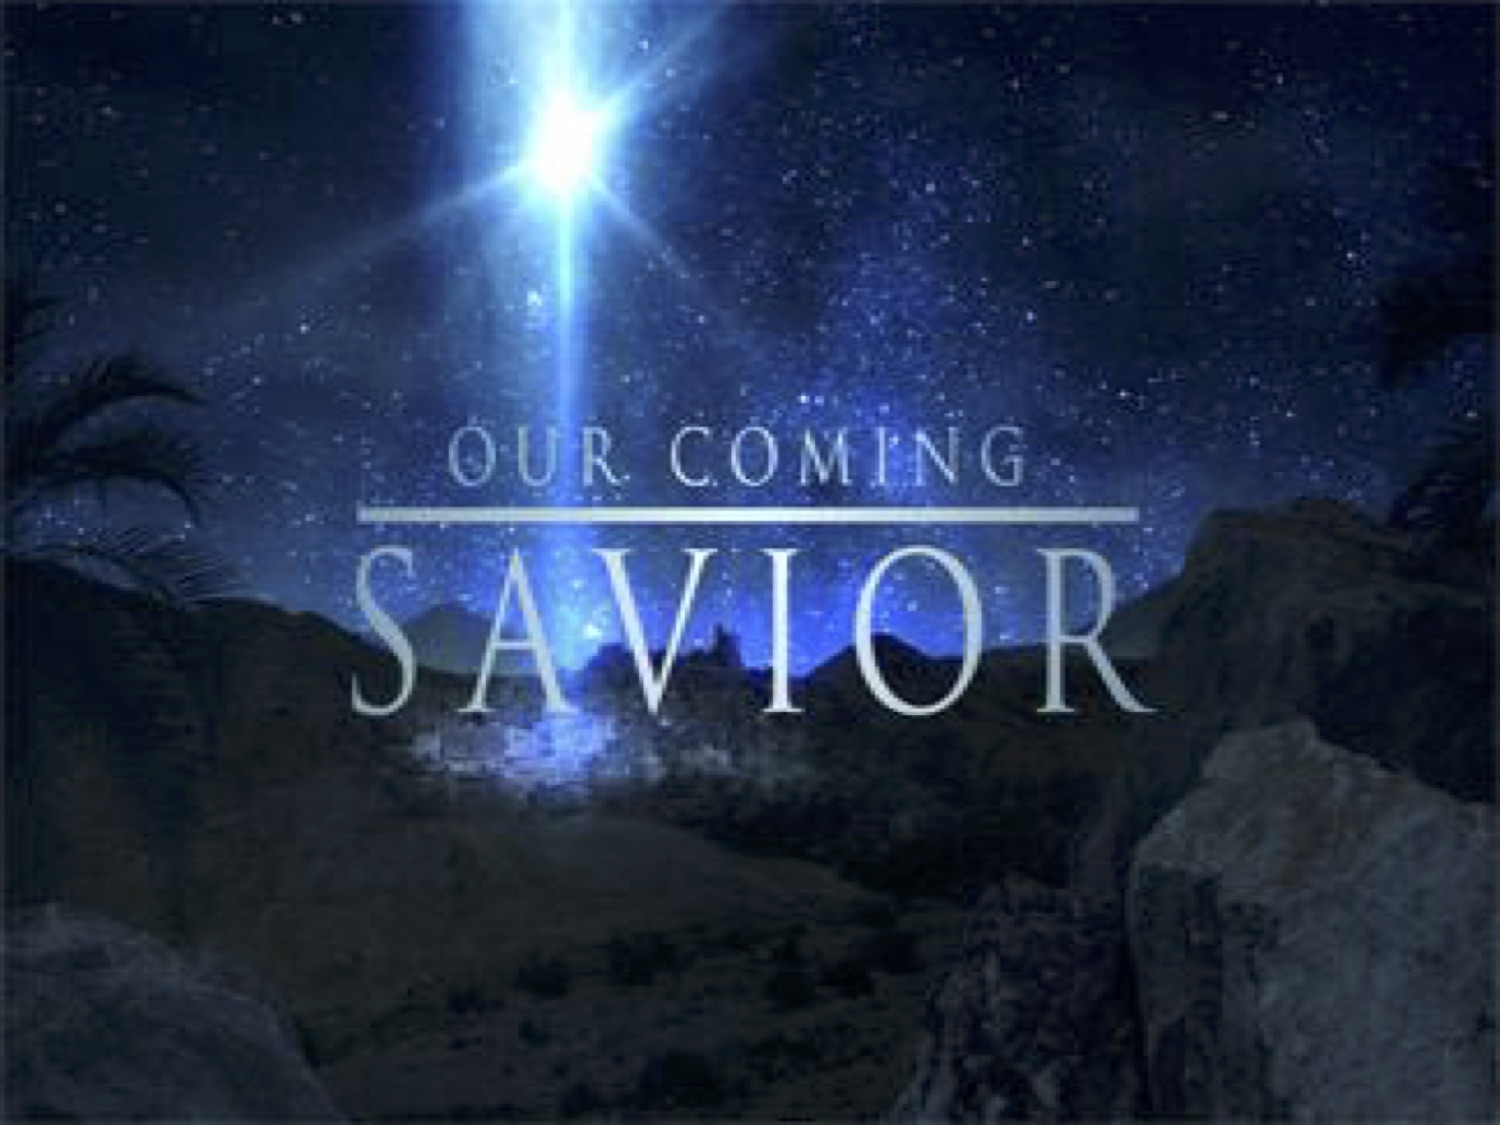 Our coming savior   Dec 2016  - A Christmas series looking forward and looking backward to Jesus' coming